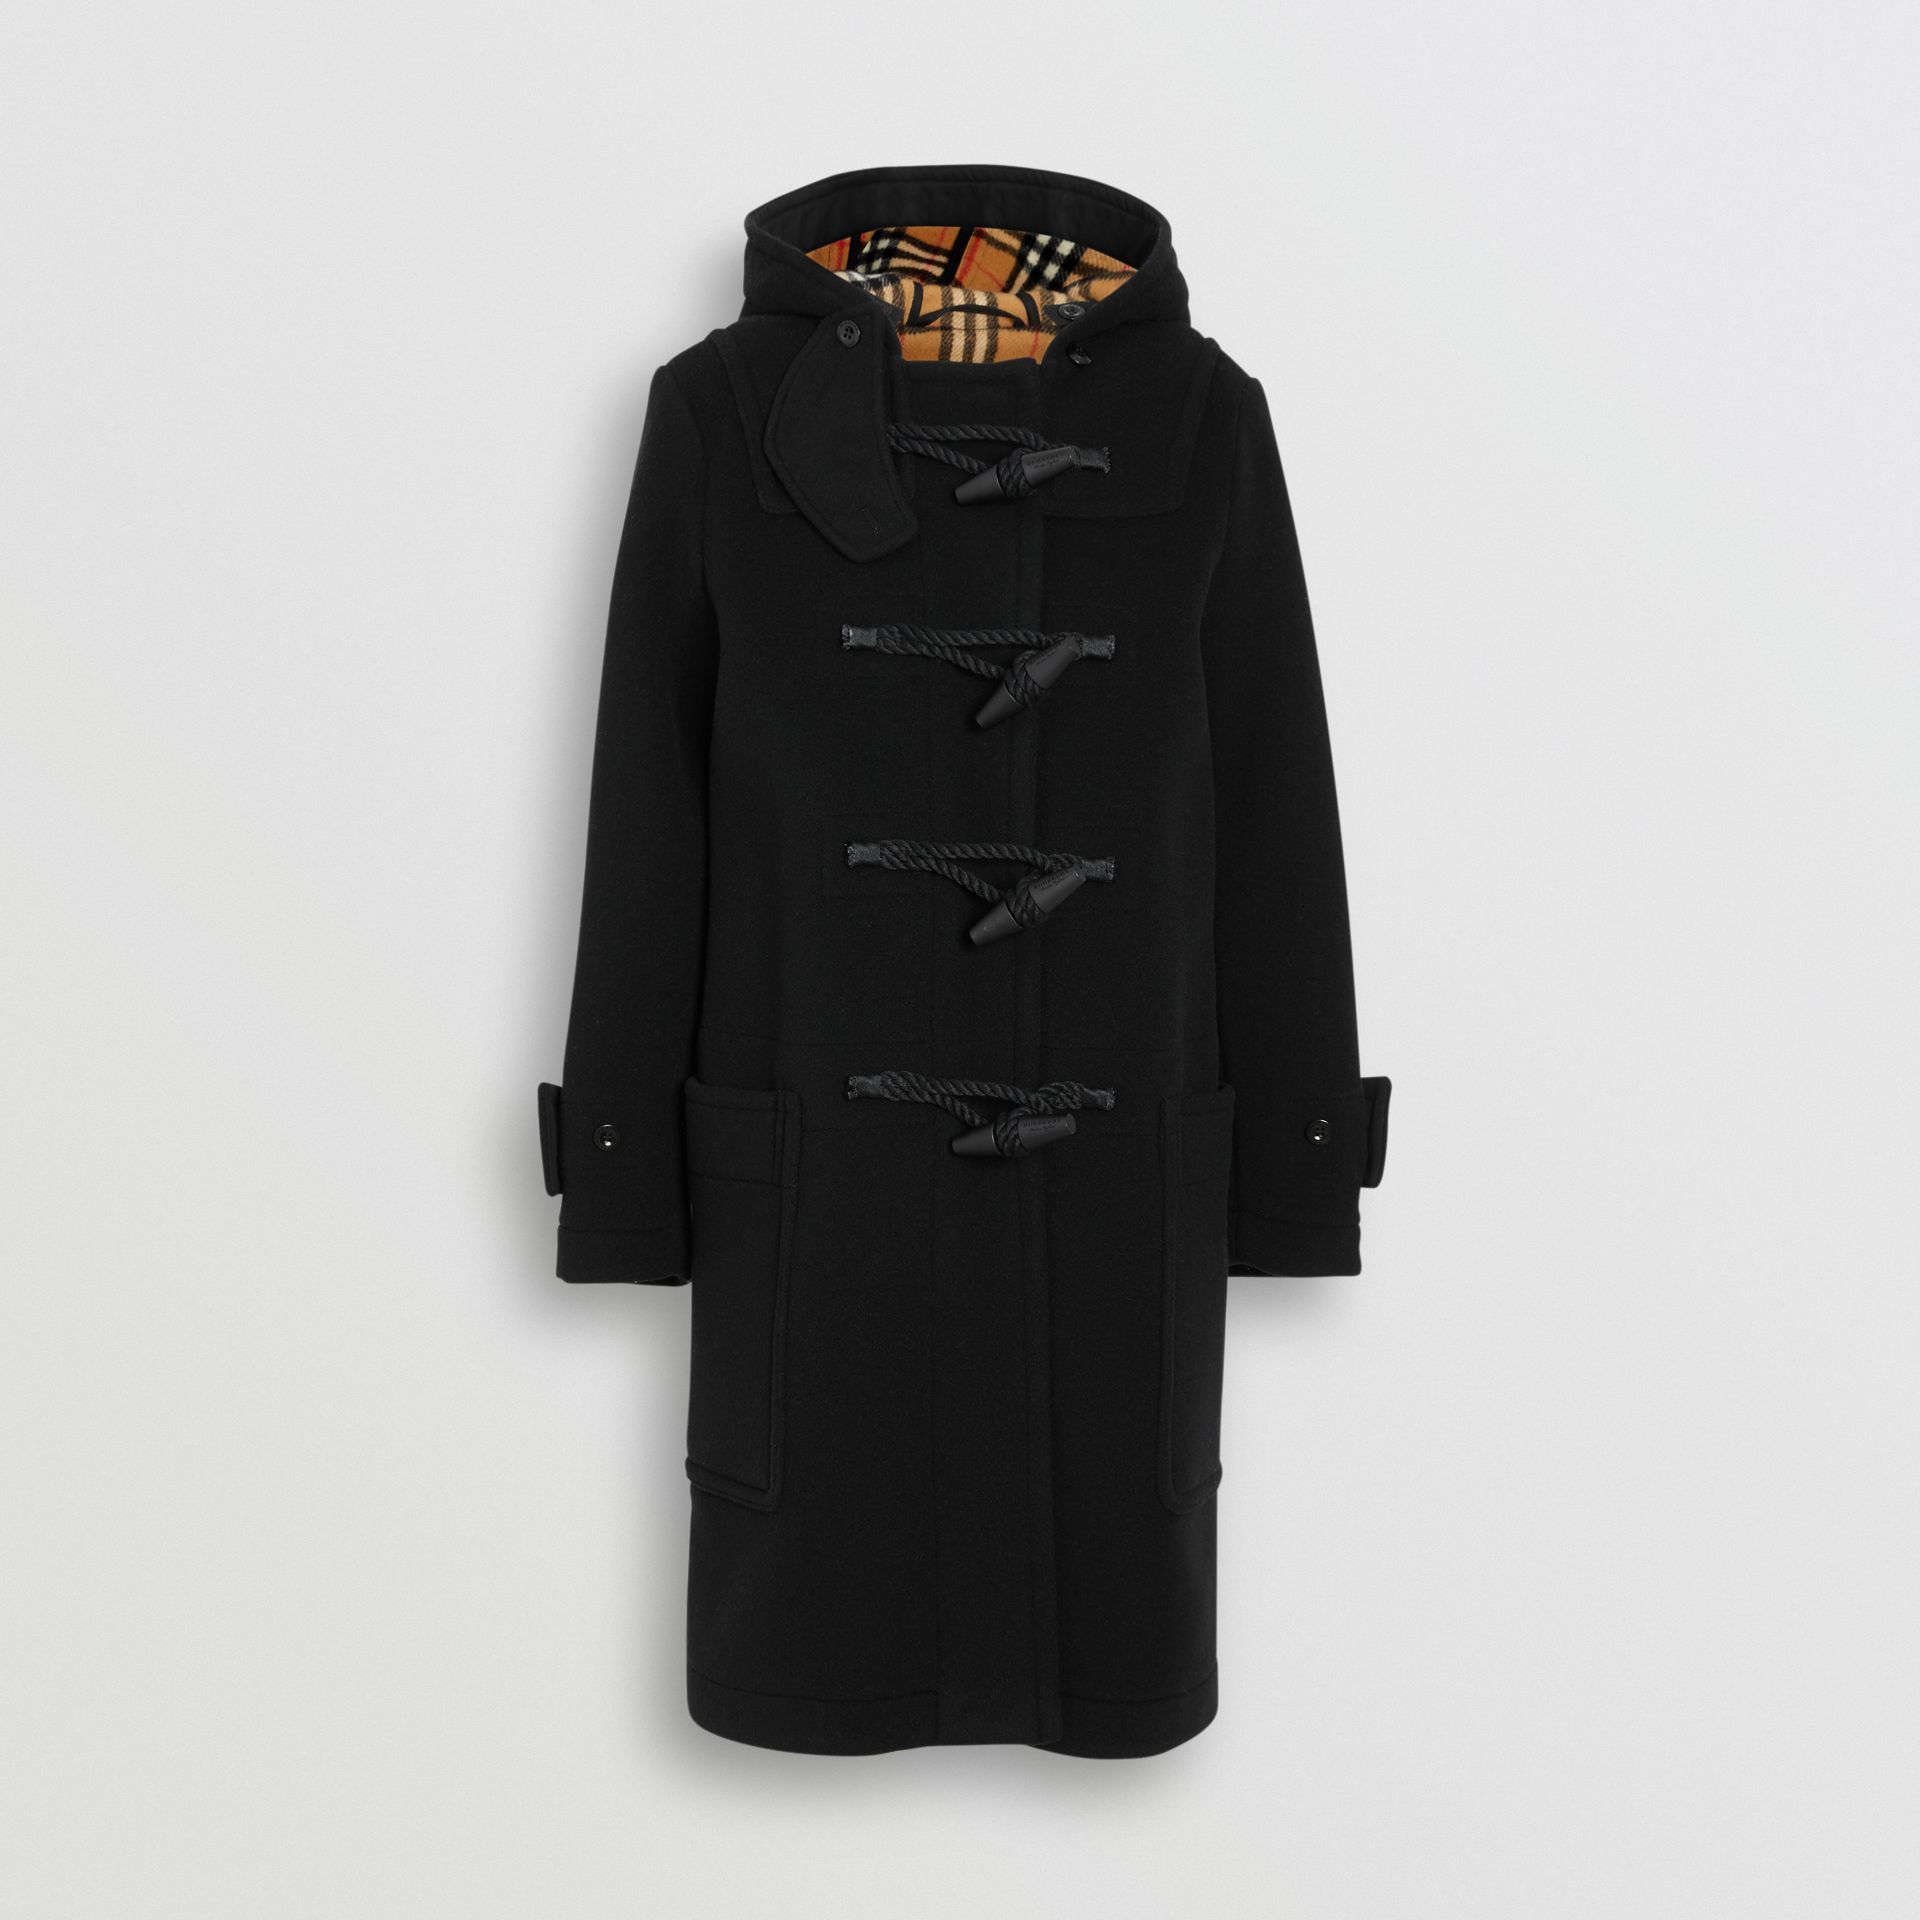 Wool Blend Duffle Coat in Black - Women | Burberry Australia - gallery image 3